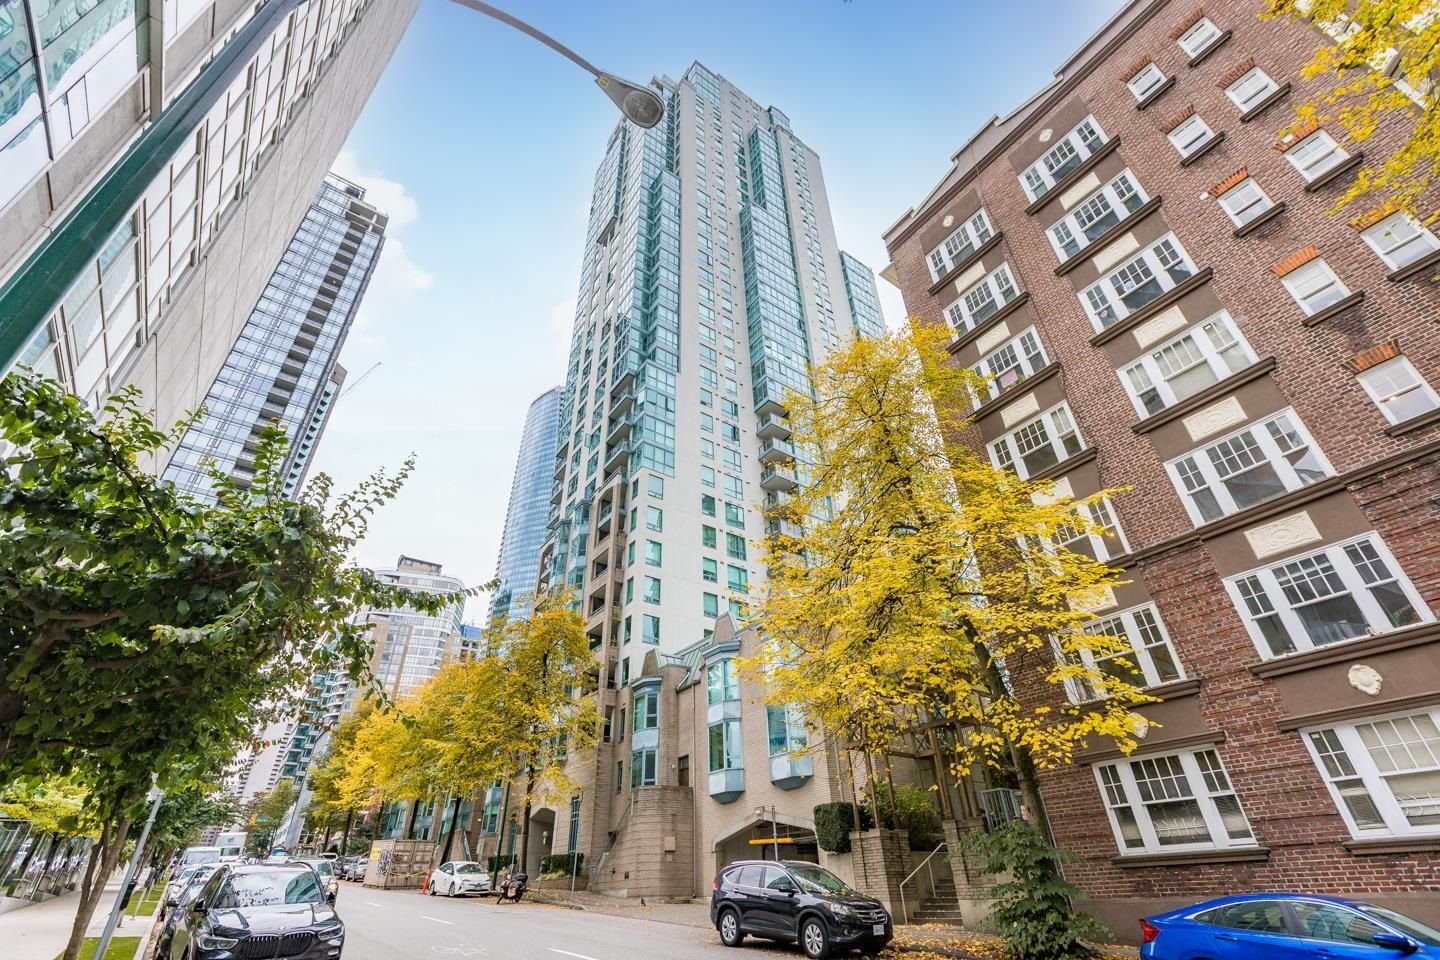 Main Photo: 2205 1238 MELVILLE Street in Vancouver: Coal Harbour Condo for sale (Vancouver West)  : MLS®# R2625071